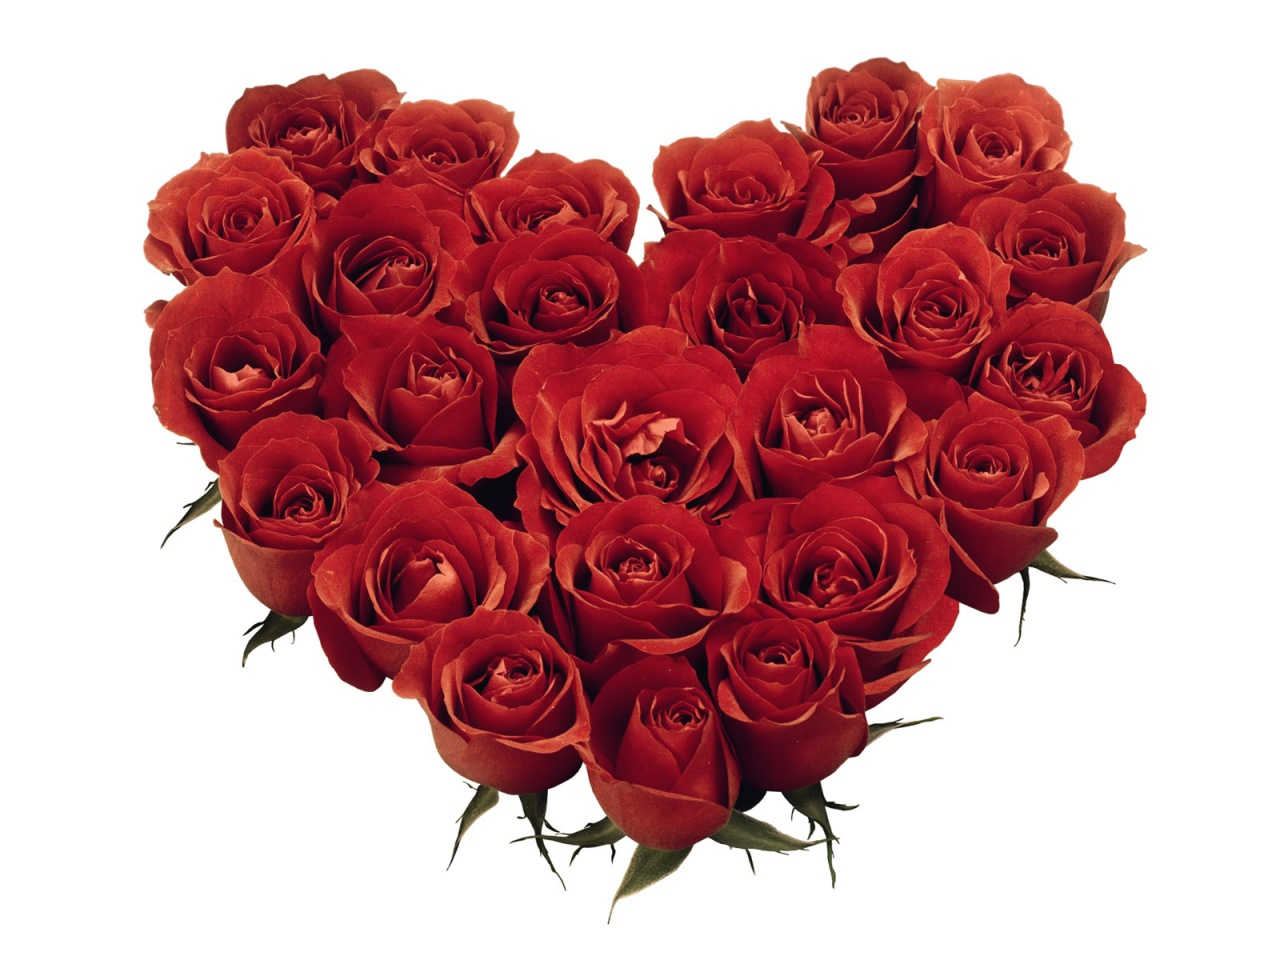 COOL WALLPAPERS red rose heart wallpaper 1280x960